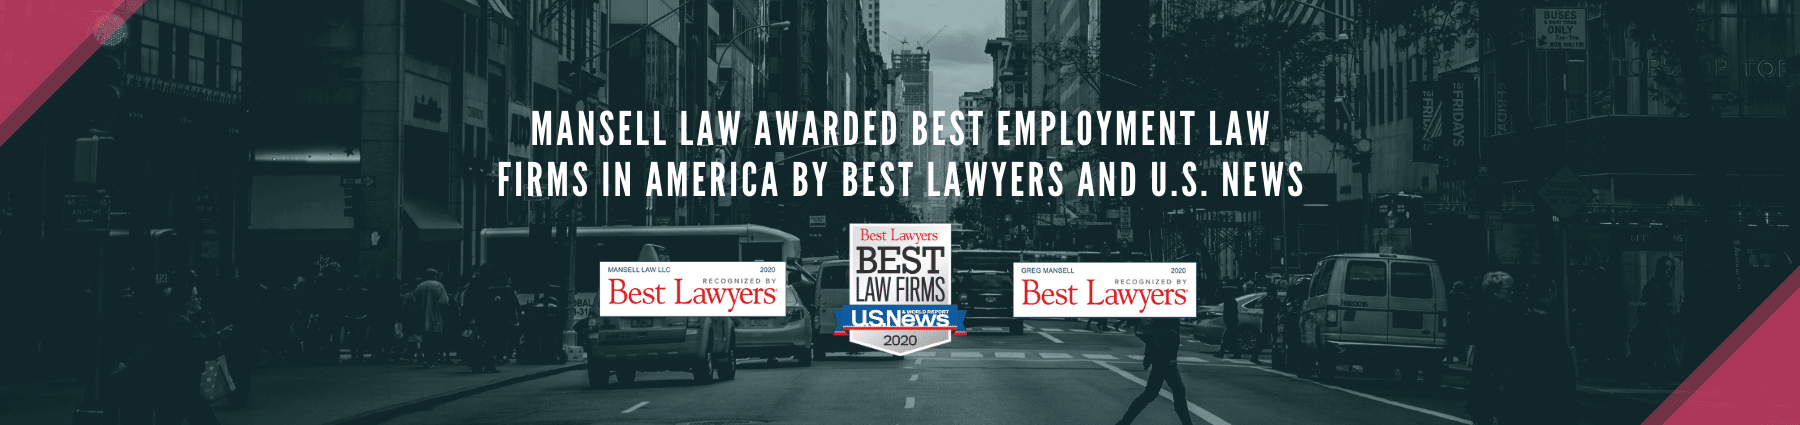 Mansell Law Awarded Best Law Firms IN U.S. BY Best Lawyers SLIDER